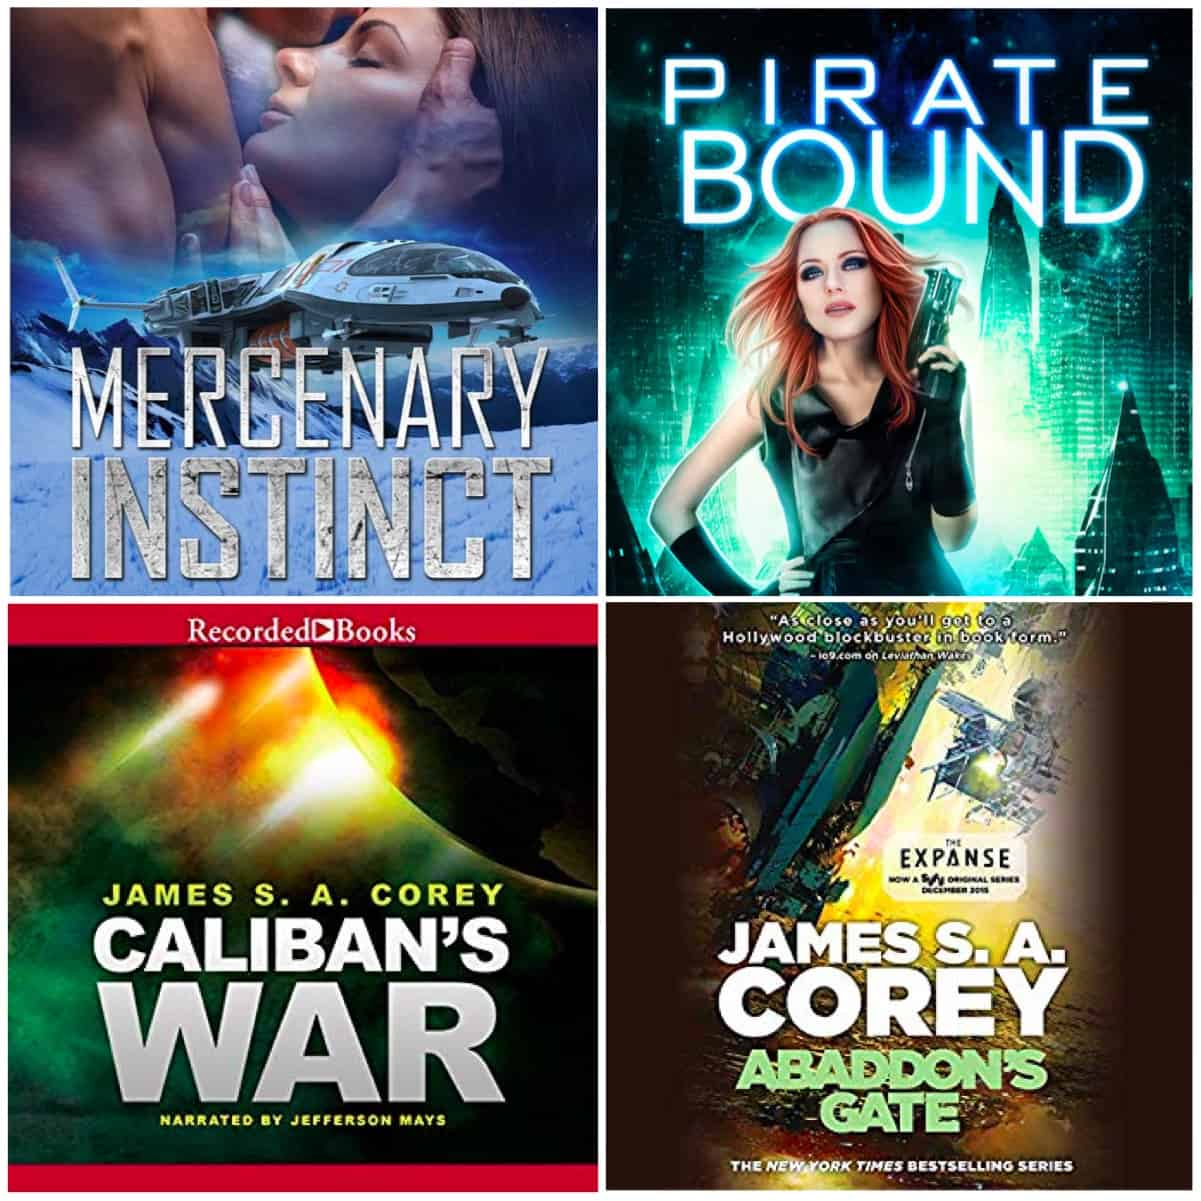 WWW: WATCH by Robert J Sawyer, DATING FOR DECADES by Tracy Krimmer, Ruby Lionsdrake, Carysa Locke, and more of the Expanse series! #amreading #audiobooks